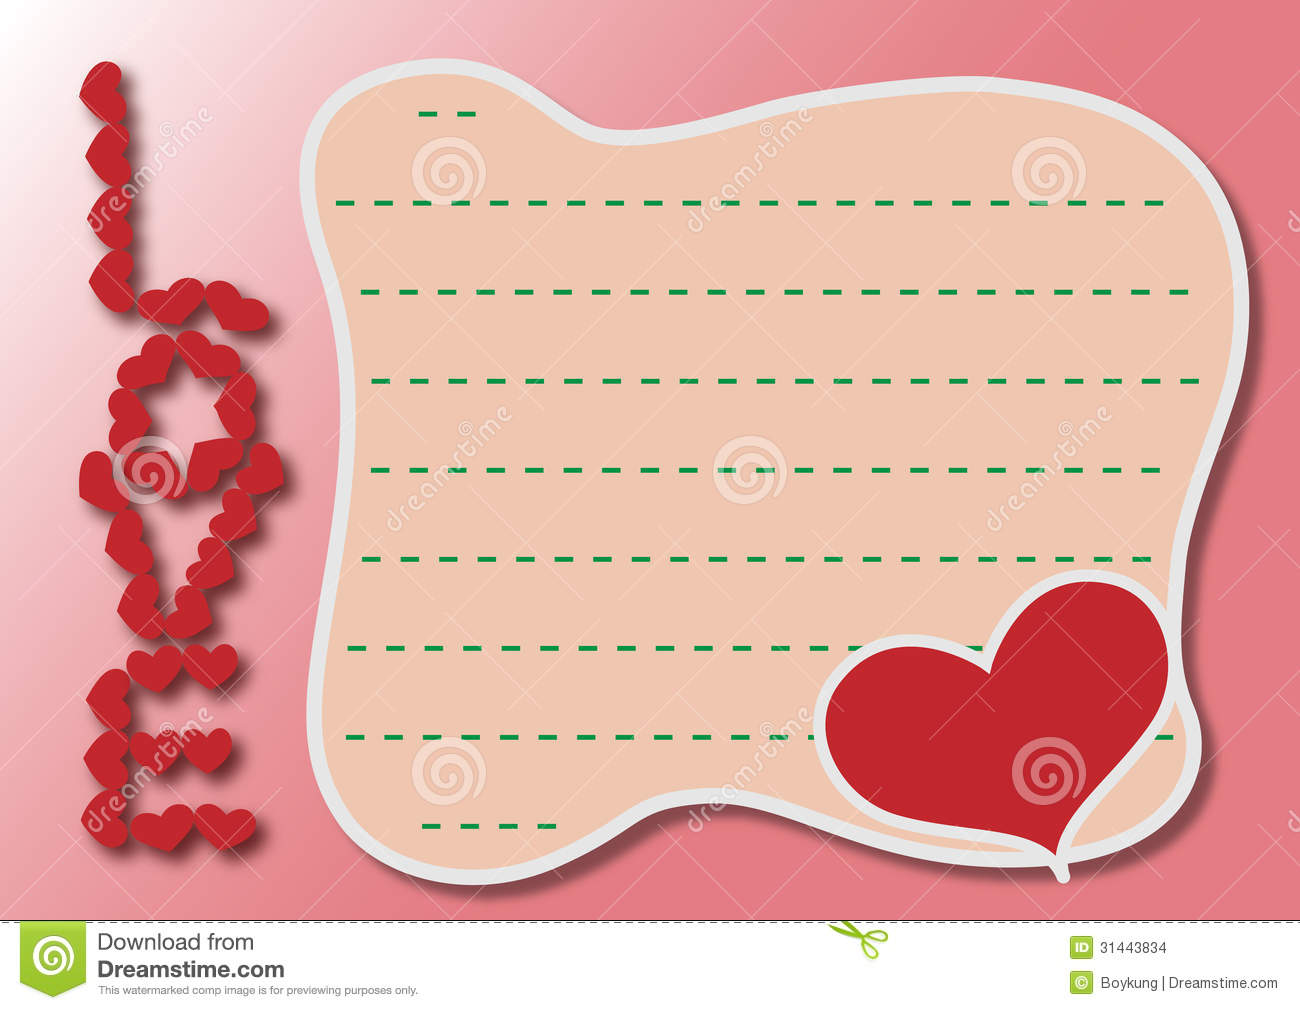 love you card for the celebration of a special Saint Valentine Day.